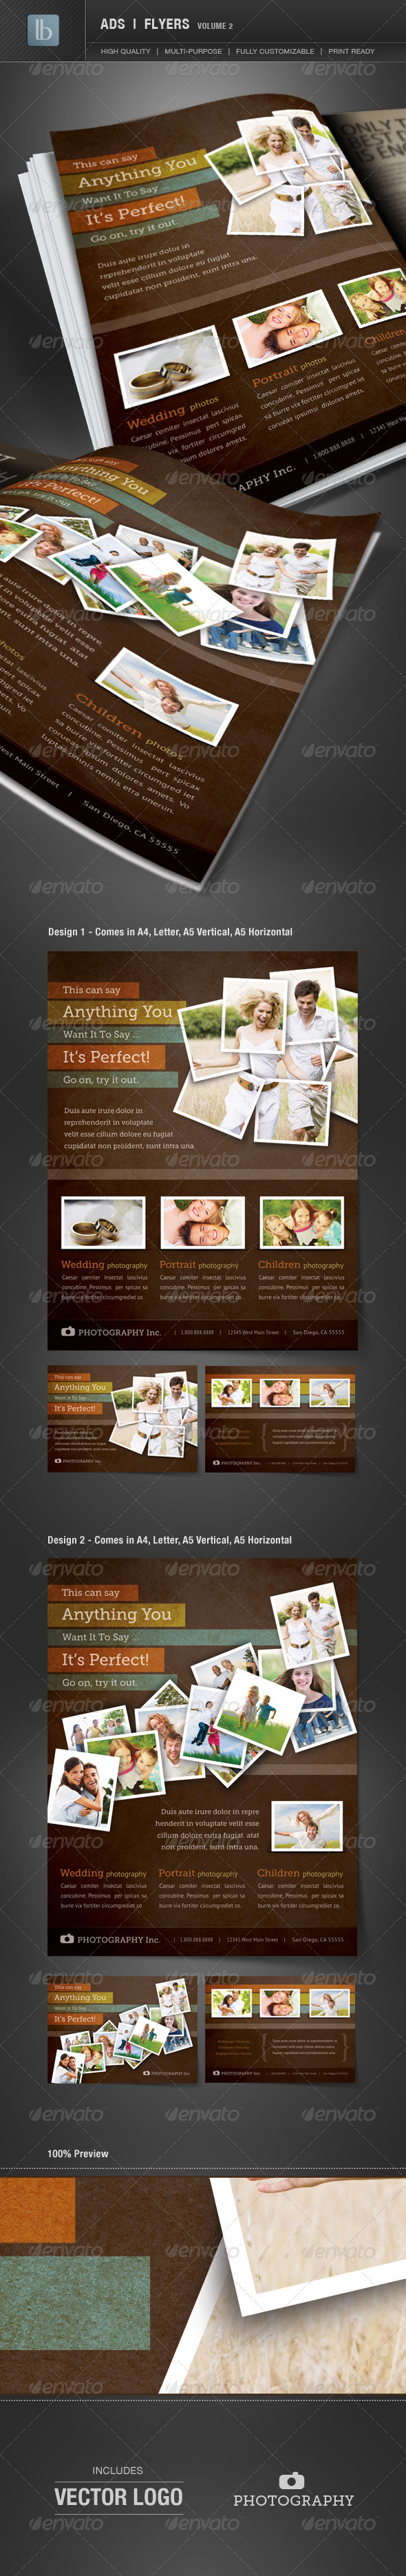 Ads | Business Flyers | Volume 2 - Corporate Flyers